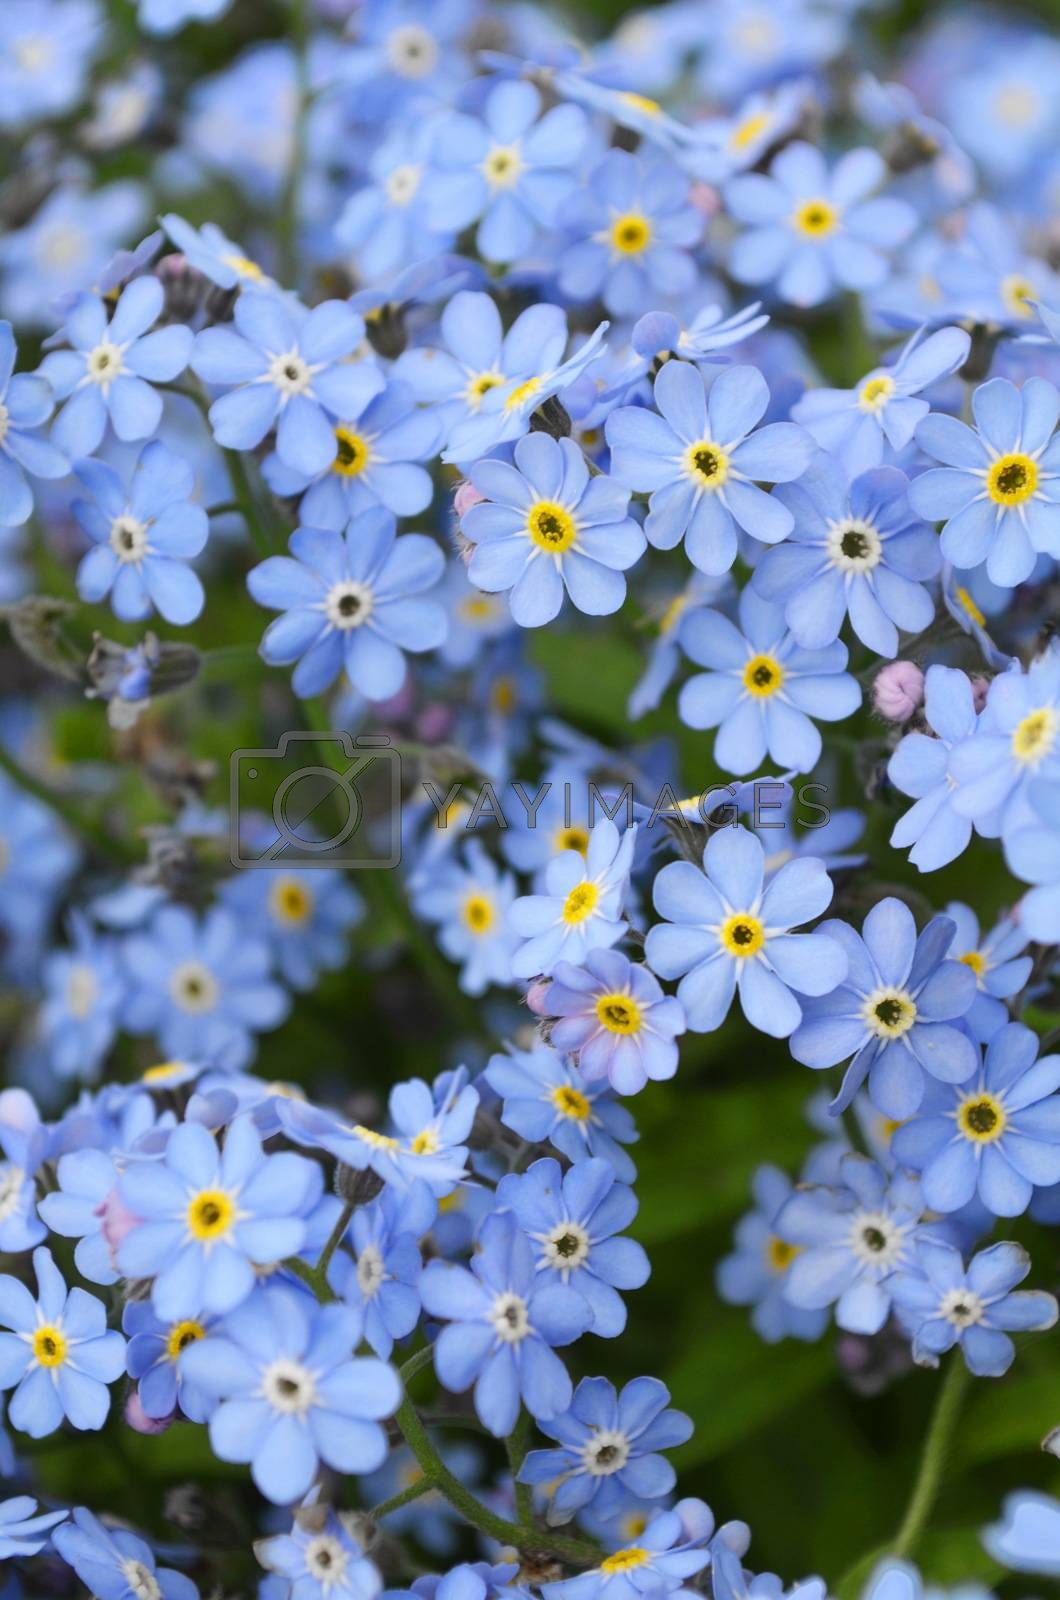 Royalty free image of Blue forget me not flowers by lorena1306